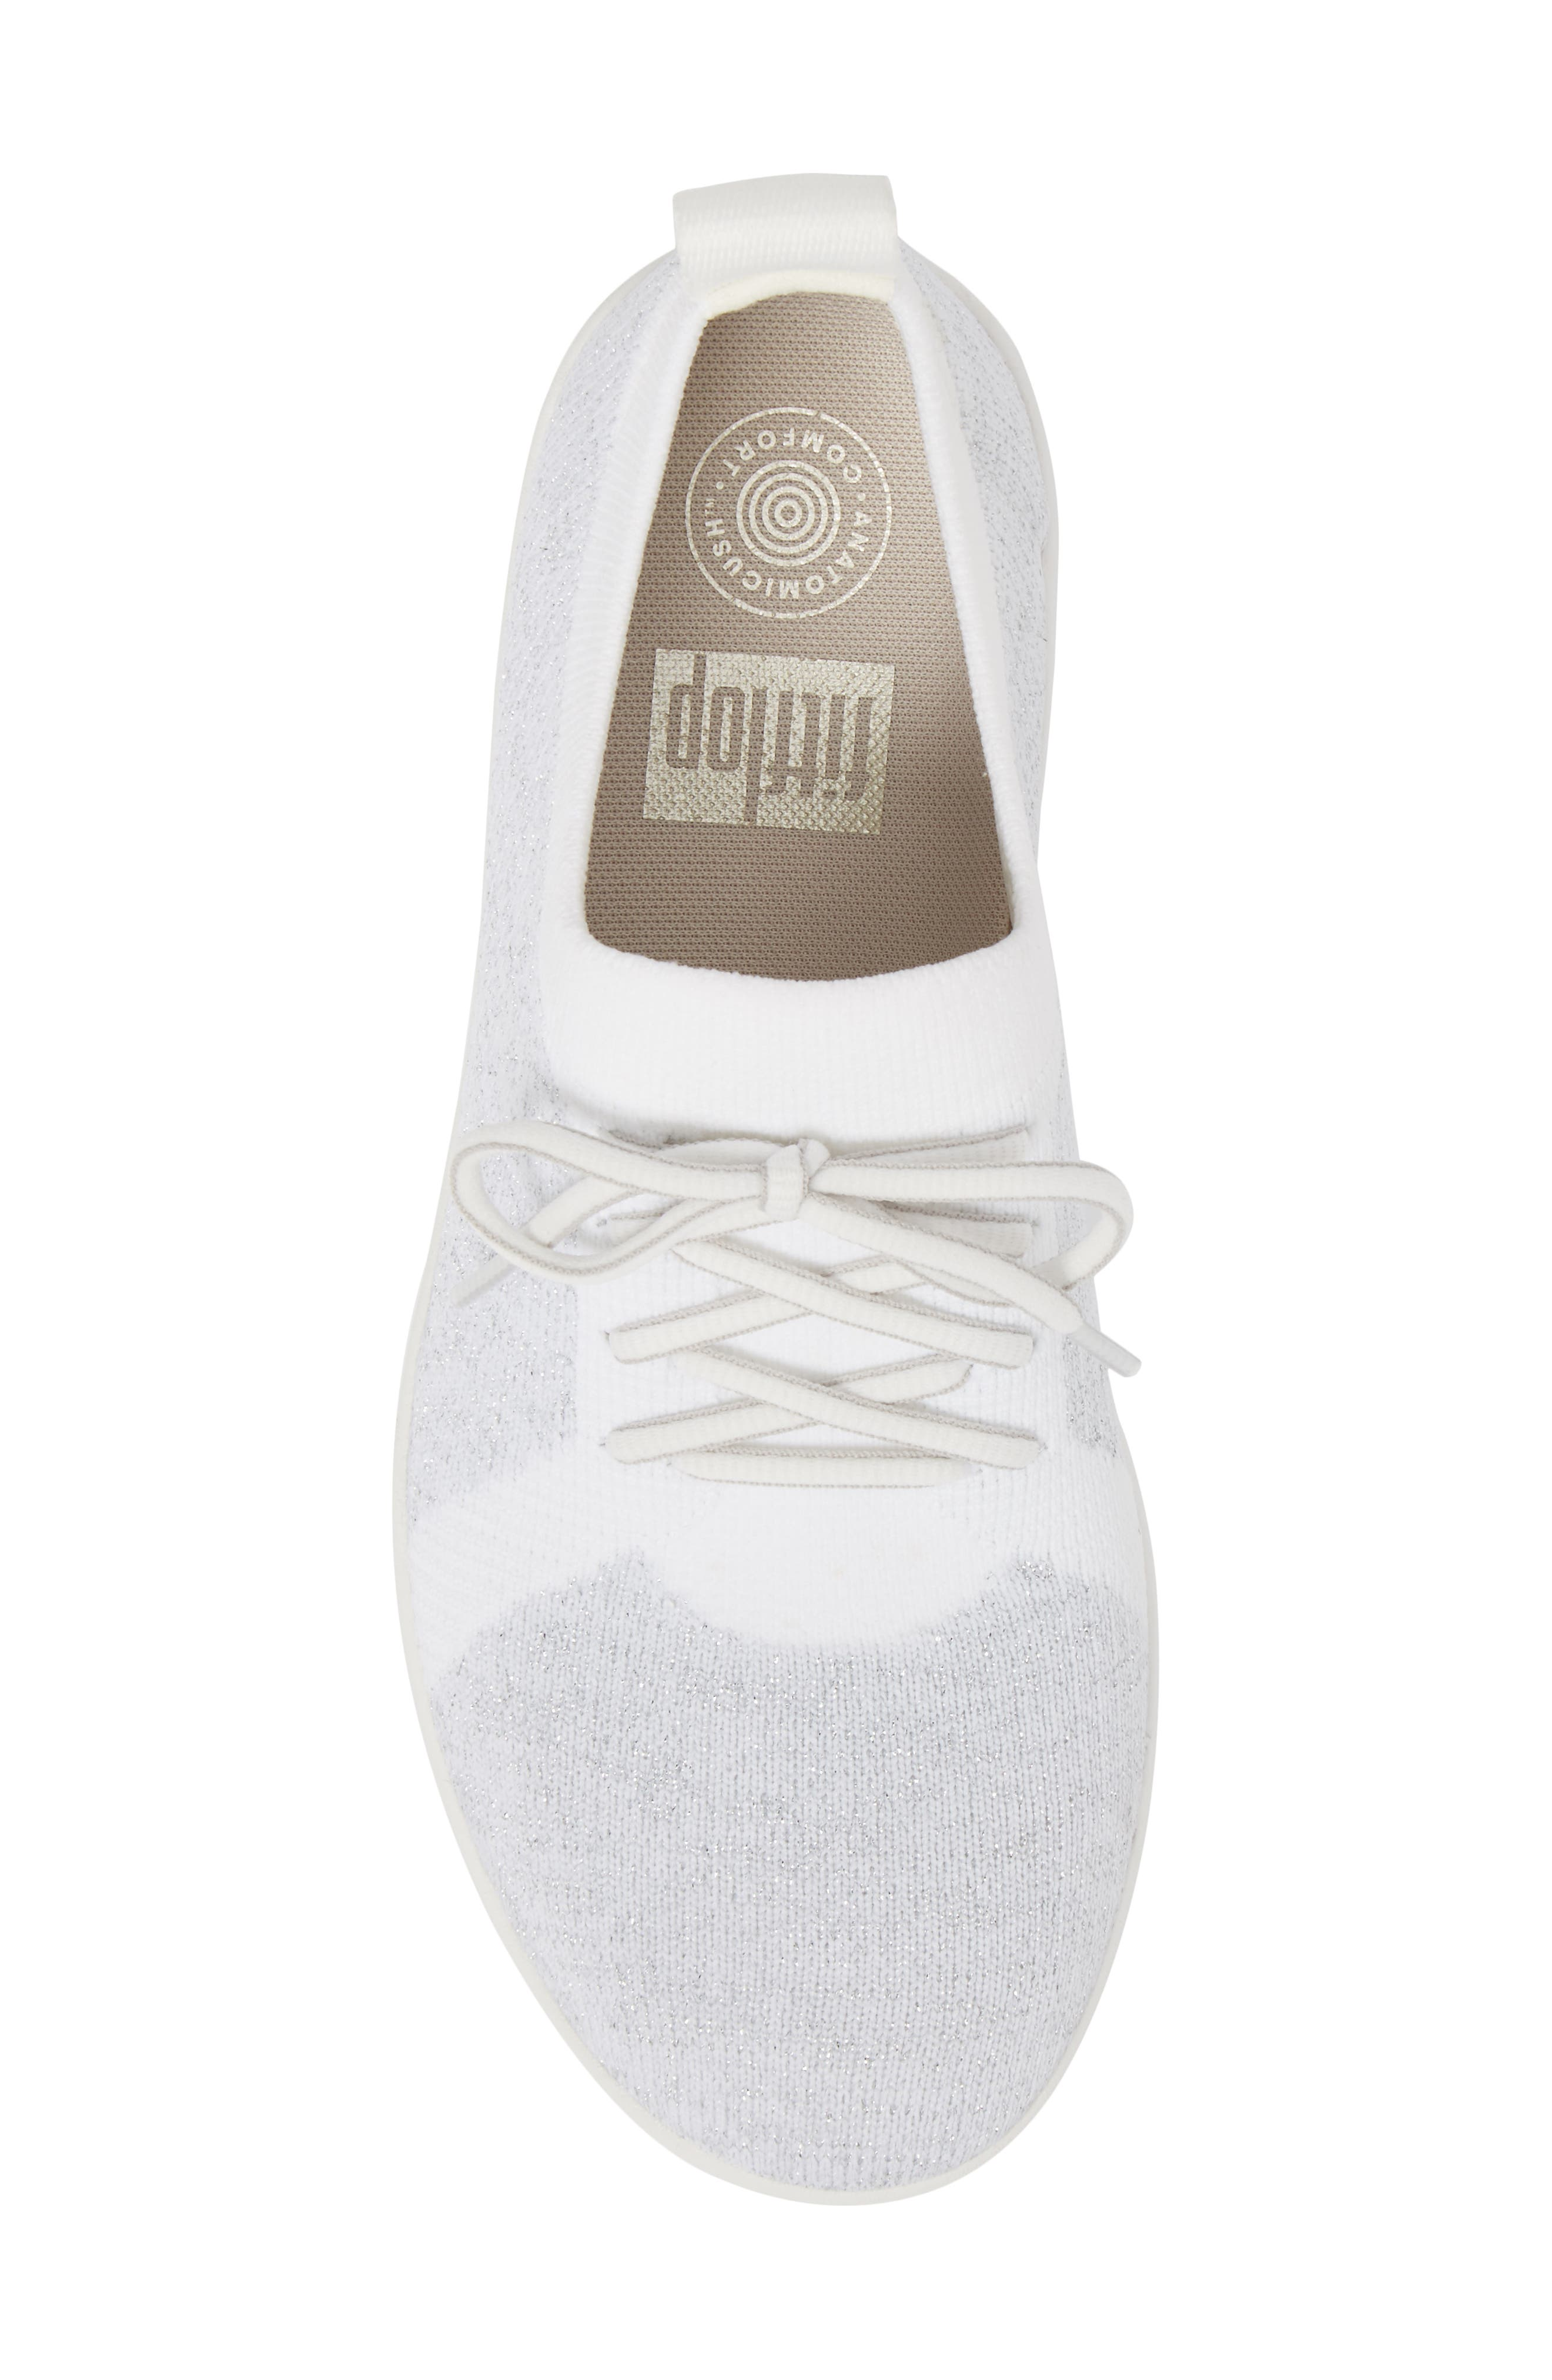 FITFLOP, Uberknit<sup>™</sup> F-Sporty Sneaker, Alternate thumbnail 5, color, METALLIC SILVER/ URBAN WHITE